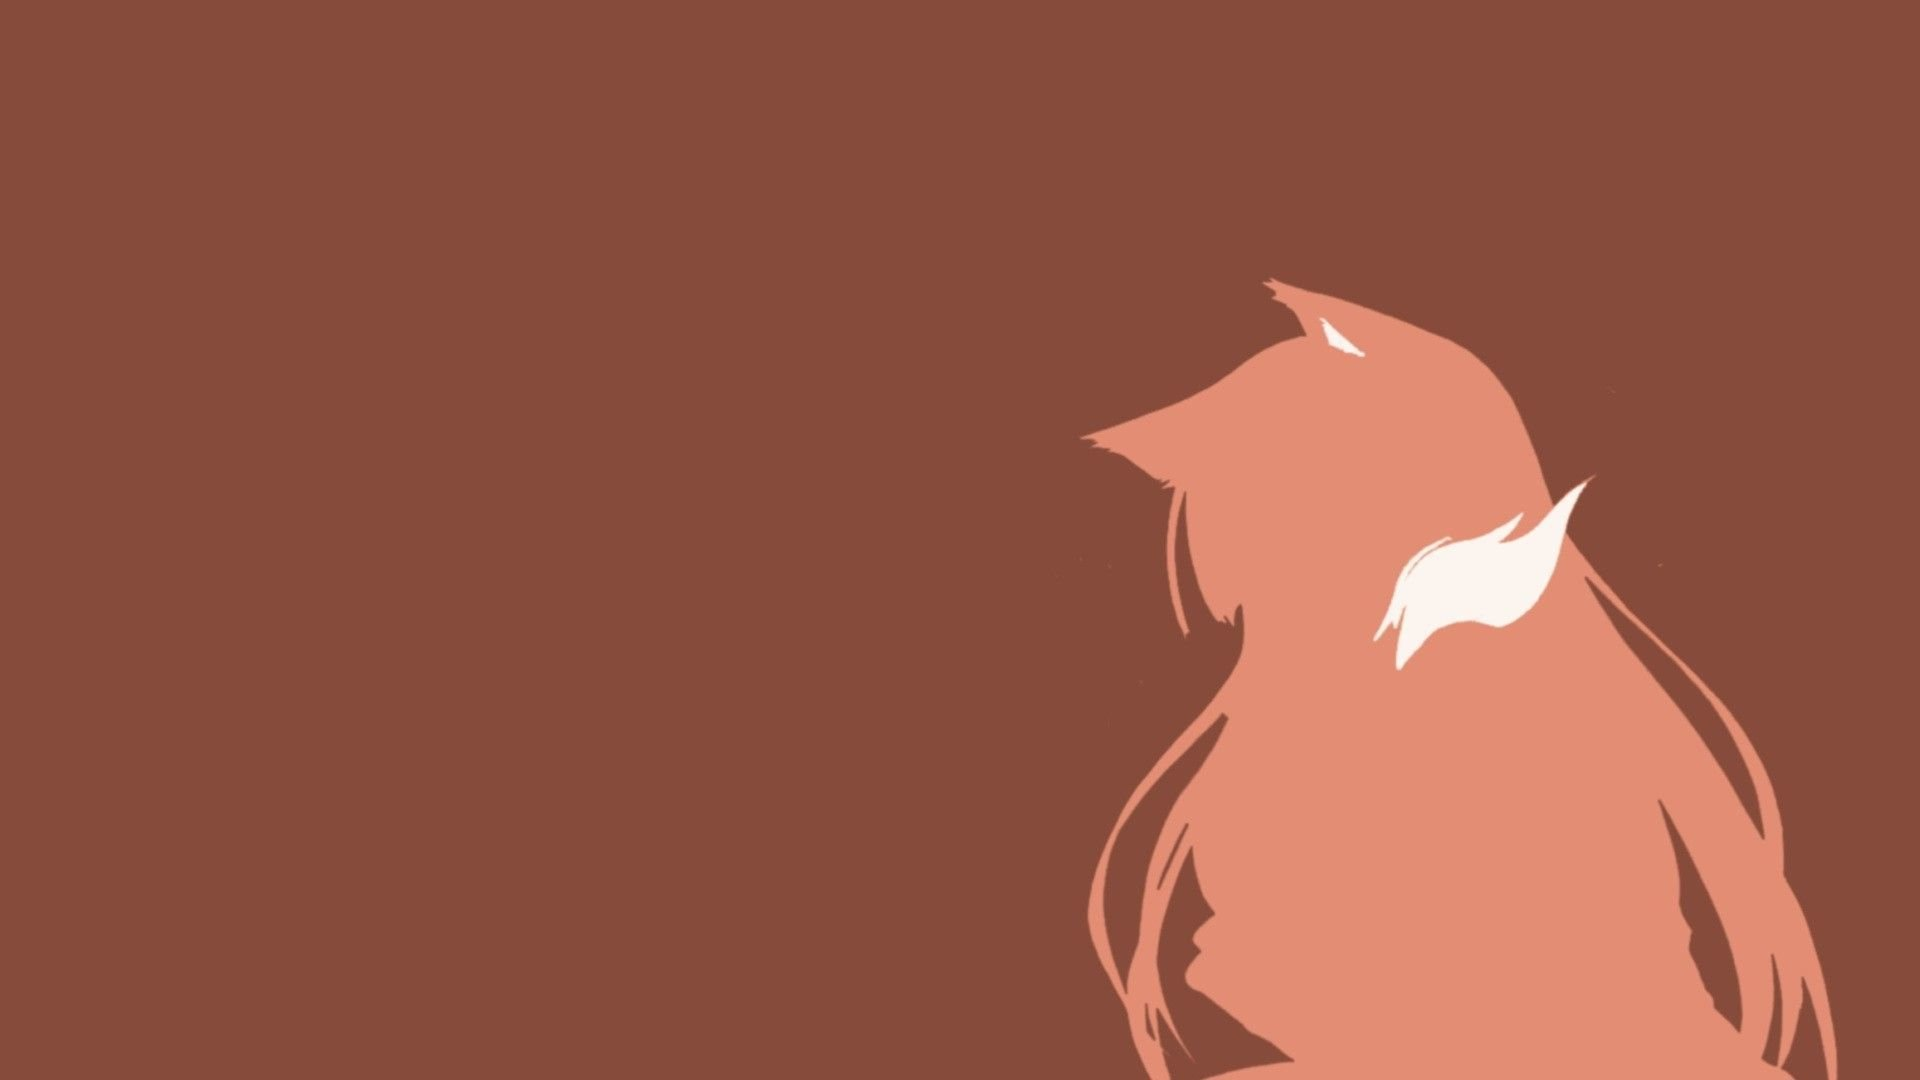 Holo Vector Spice And Wolf Wallpaper X